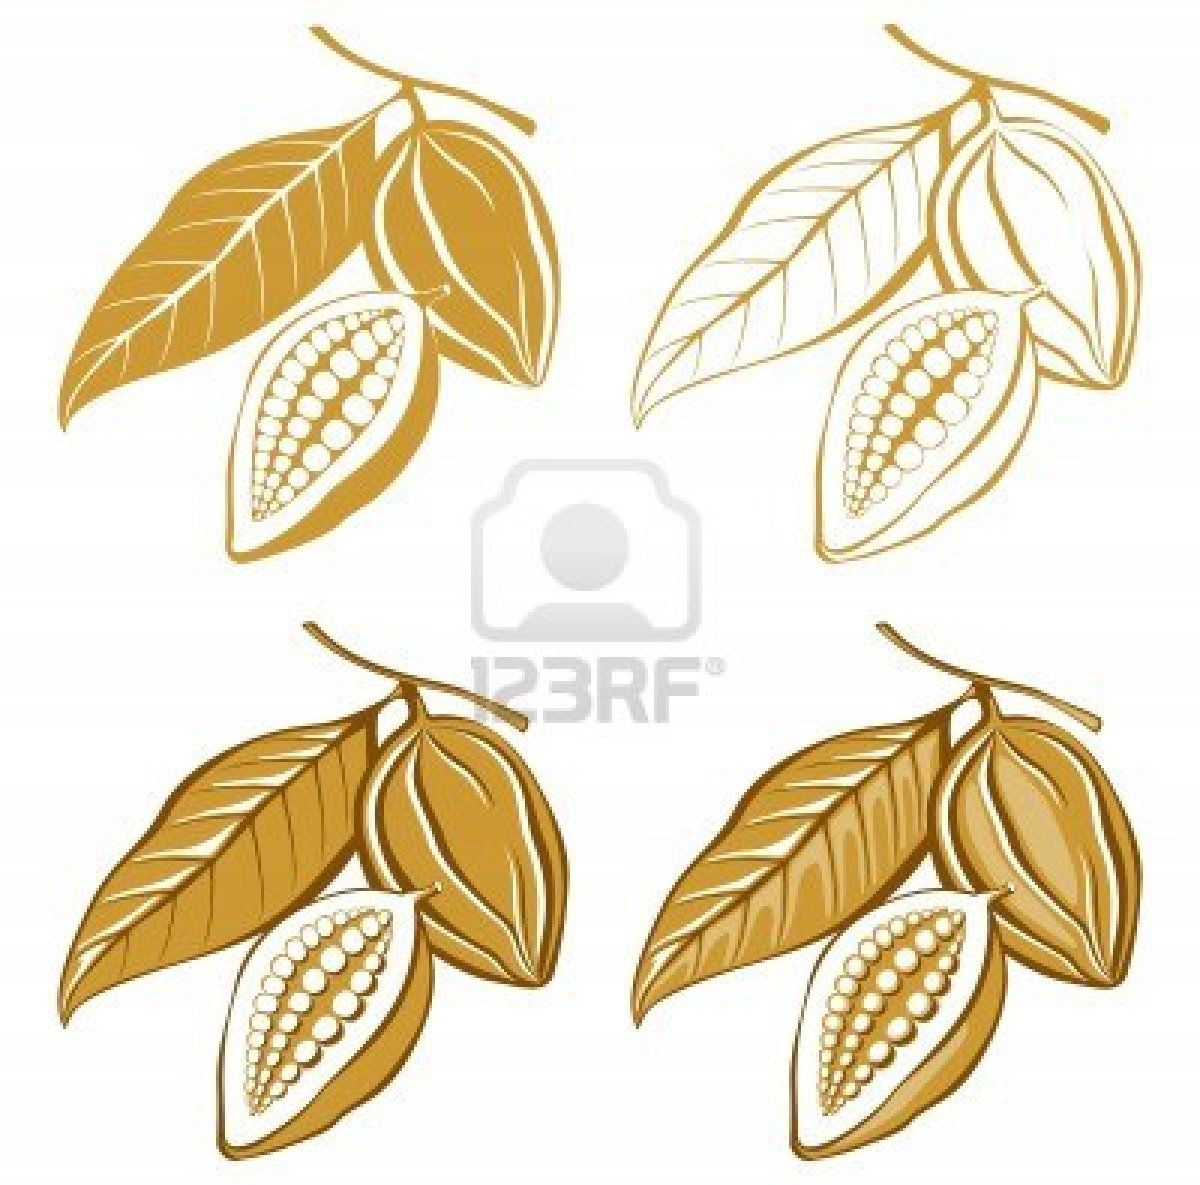 1200x1185 Cocao Bean Drawings Clip Art Food 2 Beans, Cacao